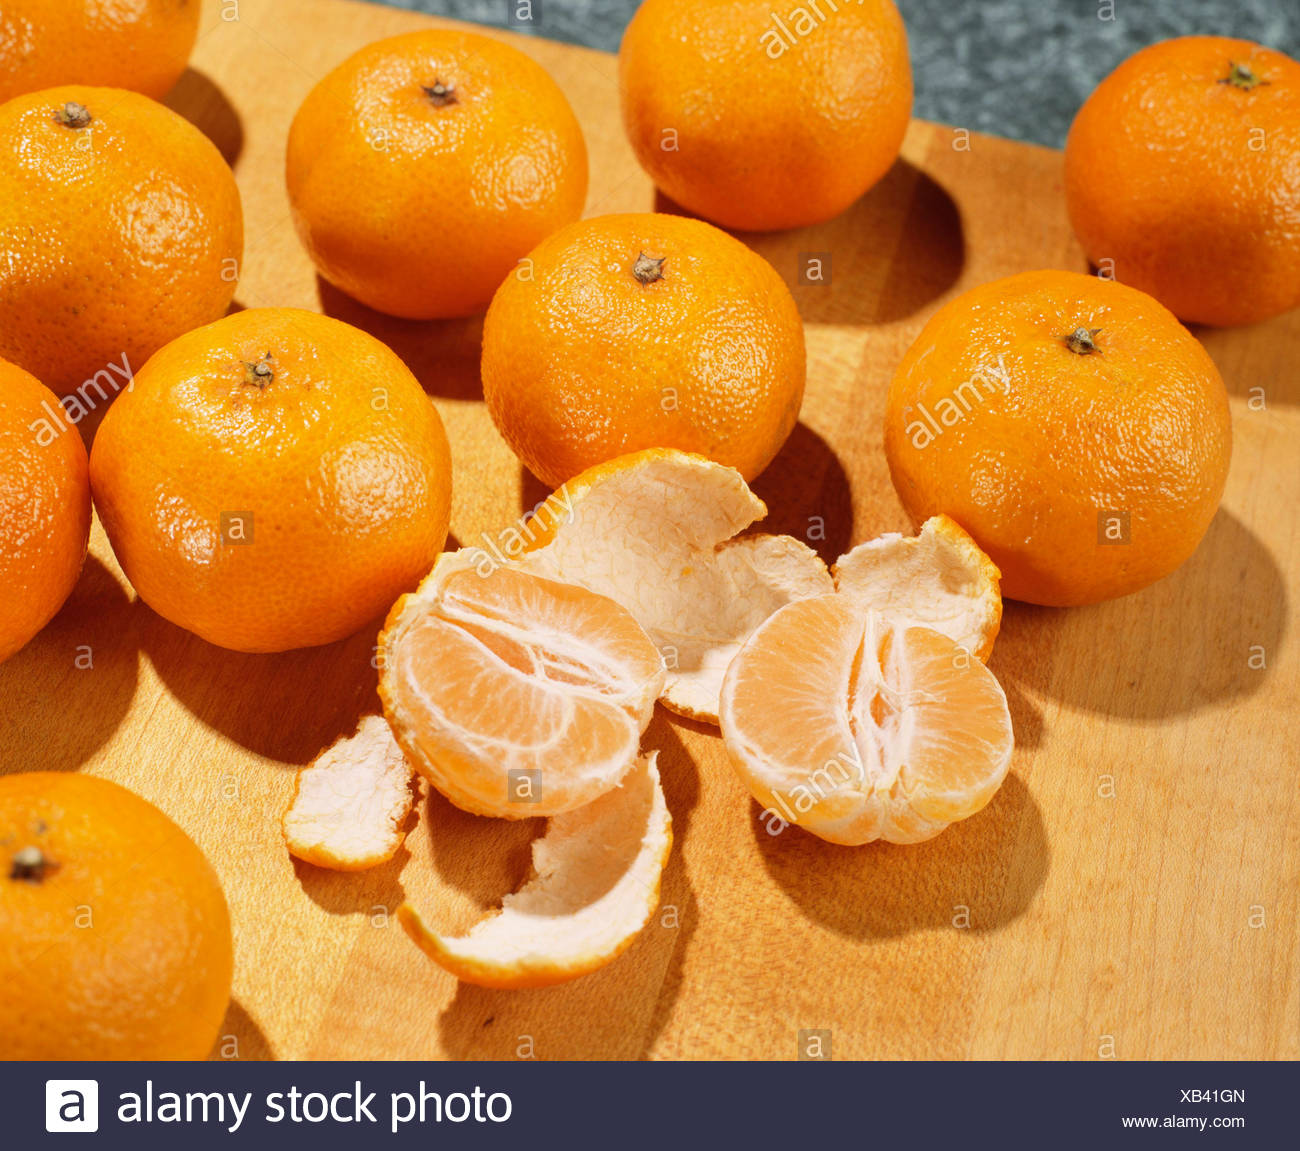 CLEMENTINES PRODUCT OF MOROCCO A TANGERINE LIKE FRUIT OFTEN SEEDLESS